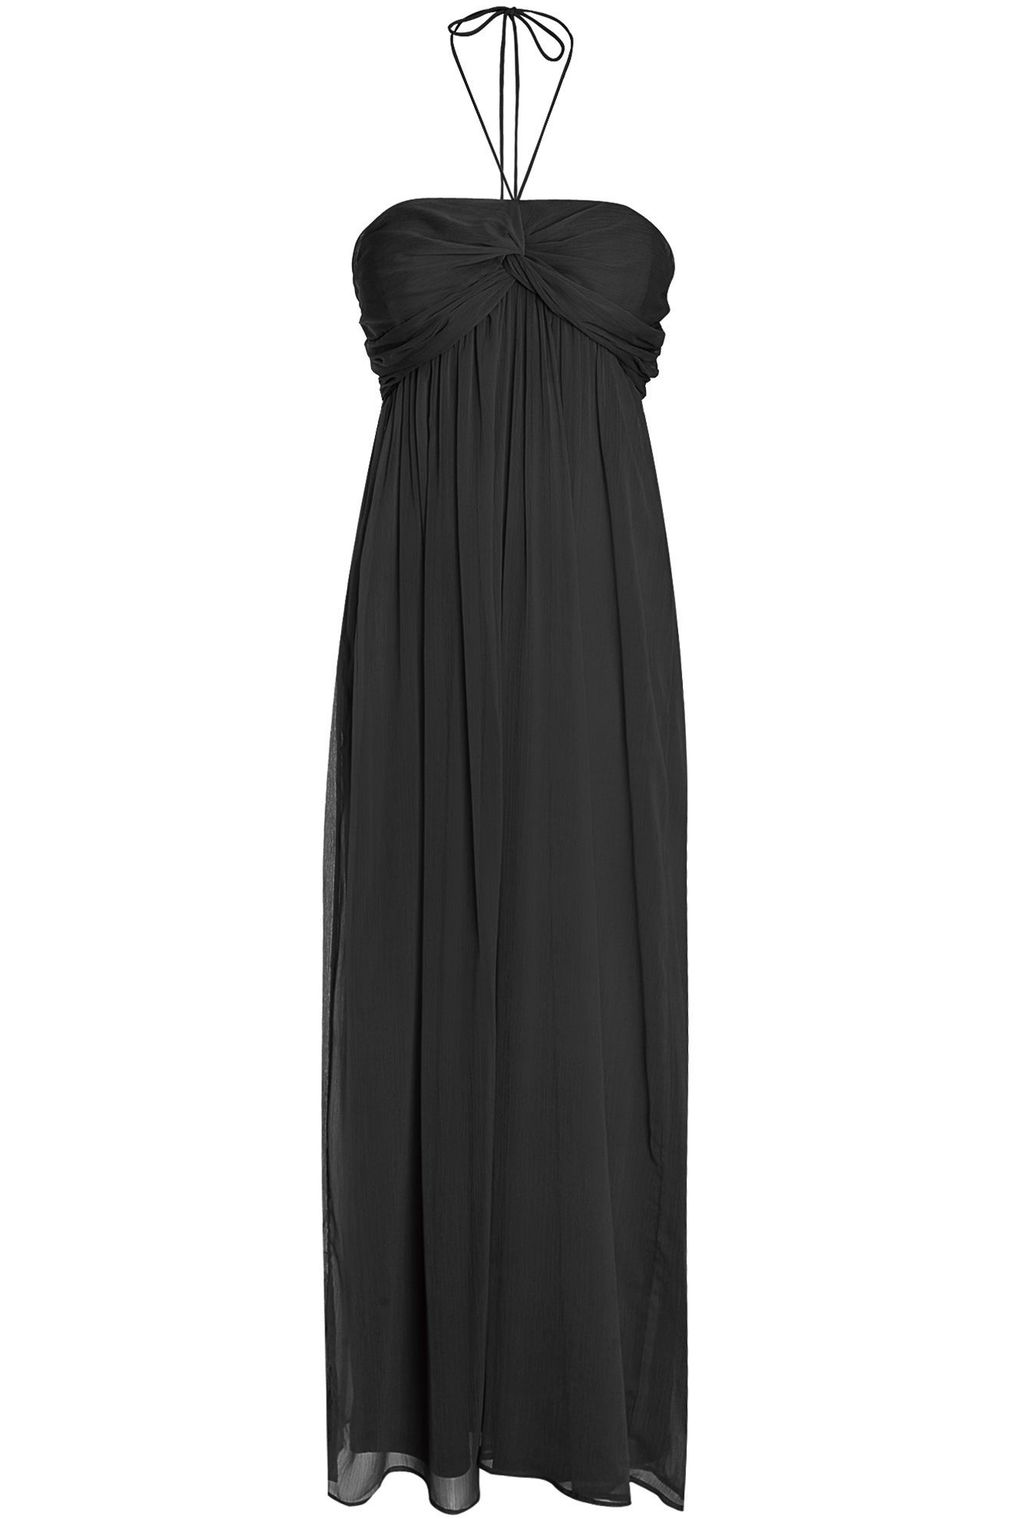 Ruched Halterneck Maxi Dress, Black - fit: empire; pattern: plain; sleeve style: sleeveless; style: maxi dress; length: ankle length; bust detail: subtle bust detail; predominant colour: black; fibres: cotton - stretch; occasions: occasion; hip detail: subtle/flattering hip detail; sleeve length: sleeveless; pattern type: fabric; texture group: jersey - stretchy/drapey; season: s/s 2016; neckline: high halter neck; wardrobe: event